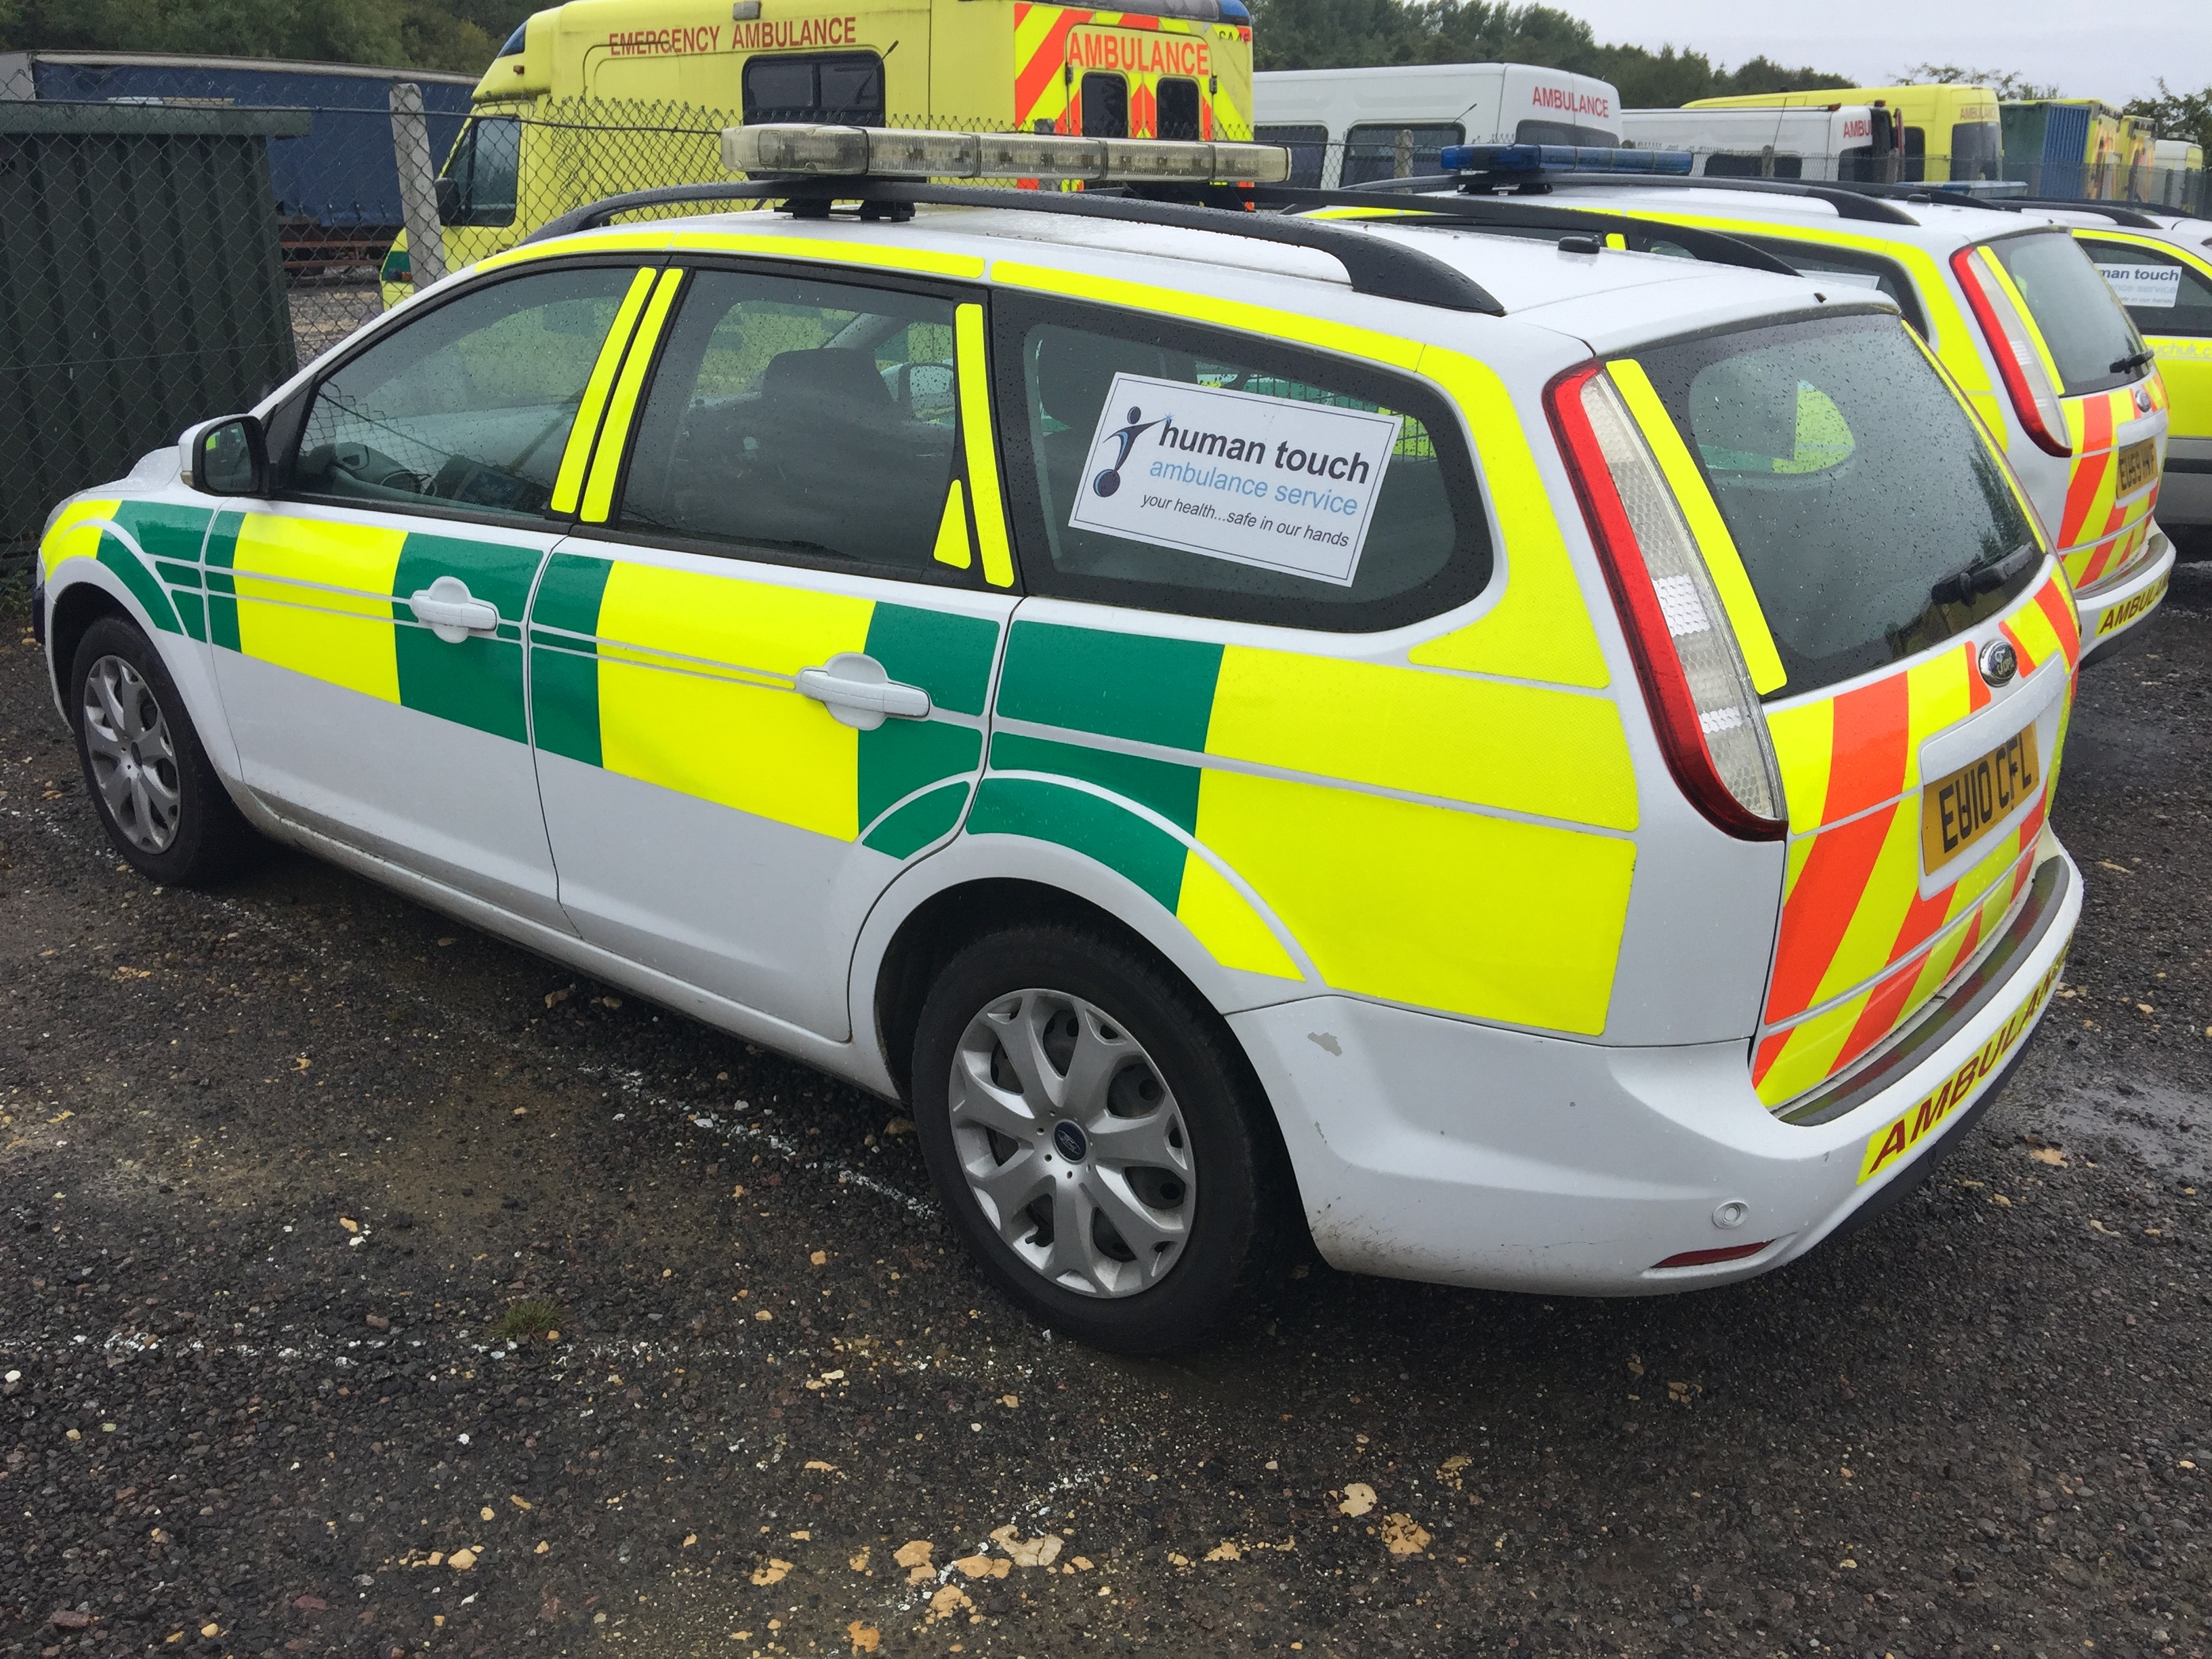 Lot 13 - Ford Focus TDCi estate rapid response vehicle, registration No EU10CFL, 167167 recorded miles,